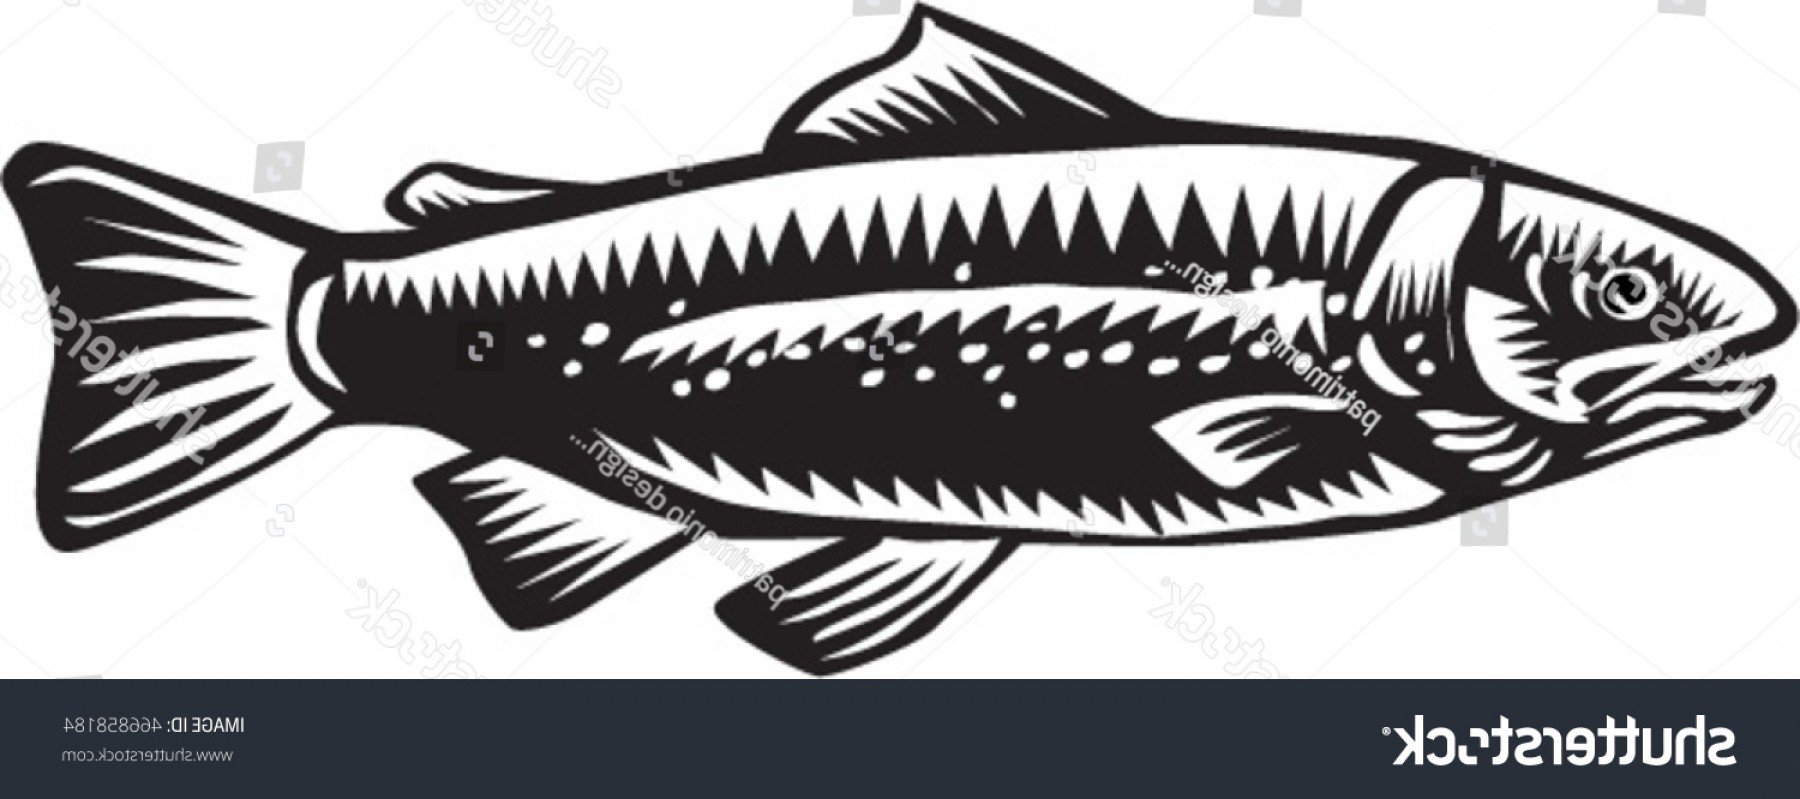 Speckled Trout Vector: Illustration Spotted Sea Trout Fish Viewed